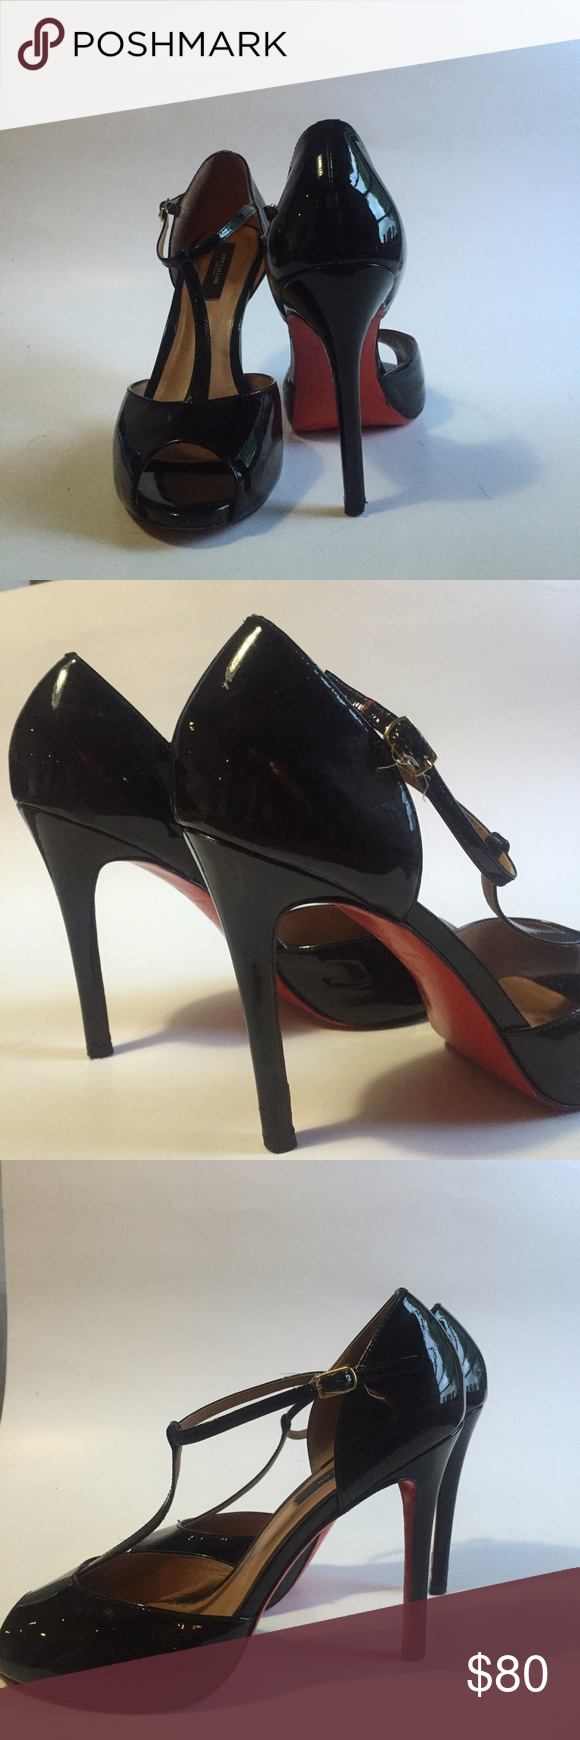 37bcf39c55cf Nine West T Strap Red Bottom Heels Louboutin Looks Nine West T Strap high  heels with painted red bottom soles! Christian Louboutin Shoes Heels